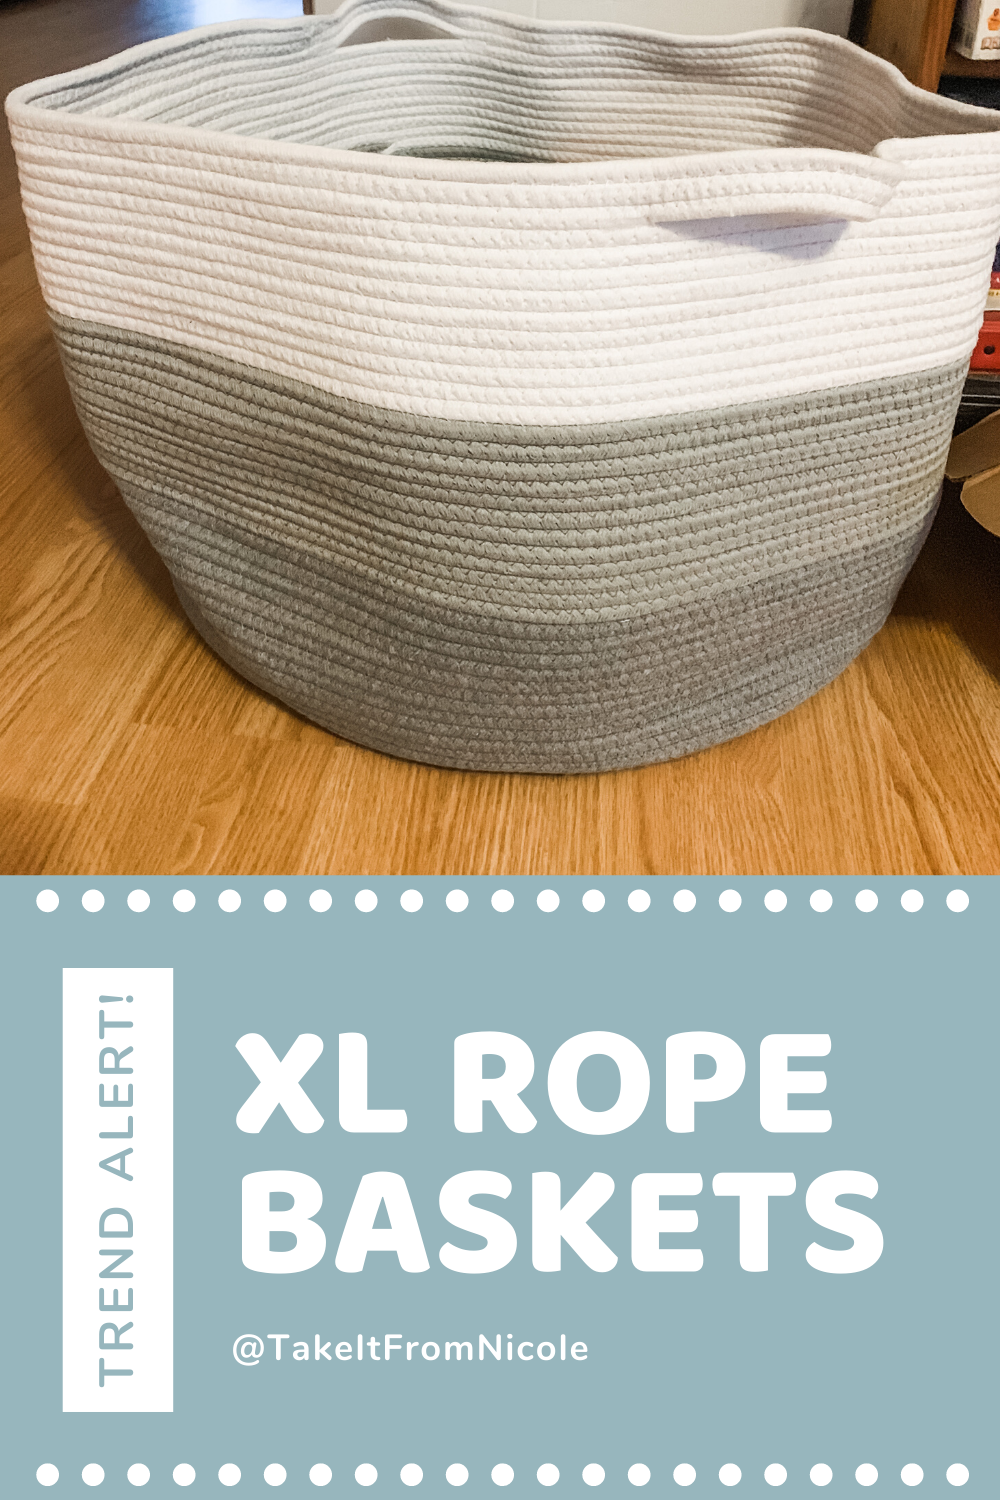 I've been using smaller rope baskets for the kids' toys for years but never thought much of it. Recently, I posted an XL rope basket I bought in the Take It From Nicole Facebook Group and people went BANANAS over it. I had no idea people would love it so much.